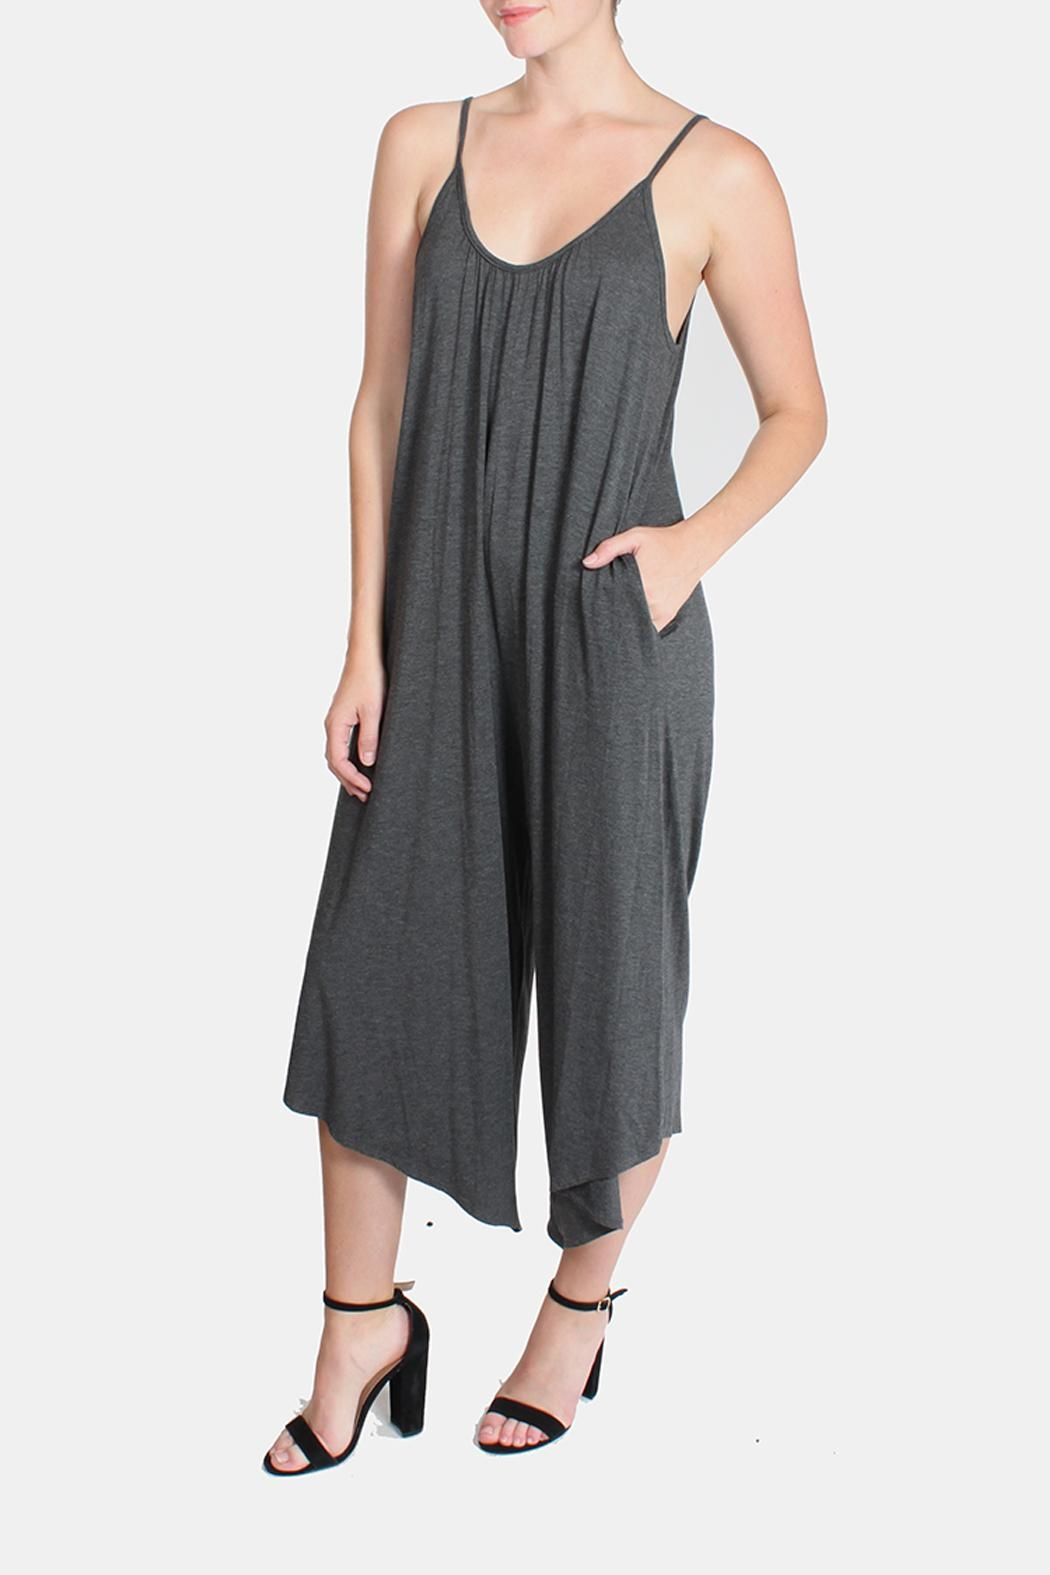 Jolie Relaxed Days Jumpsuit From Los Angeles By Goldies Shoptiques Clothing Dakota Long Dress Front Cropped Image